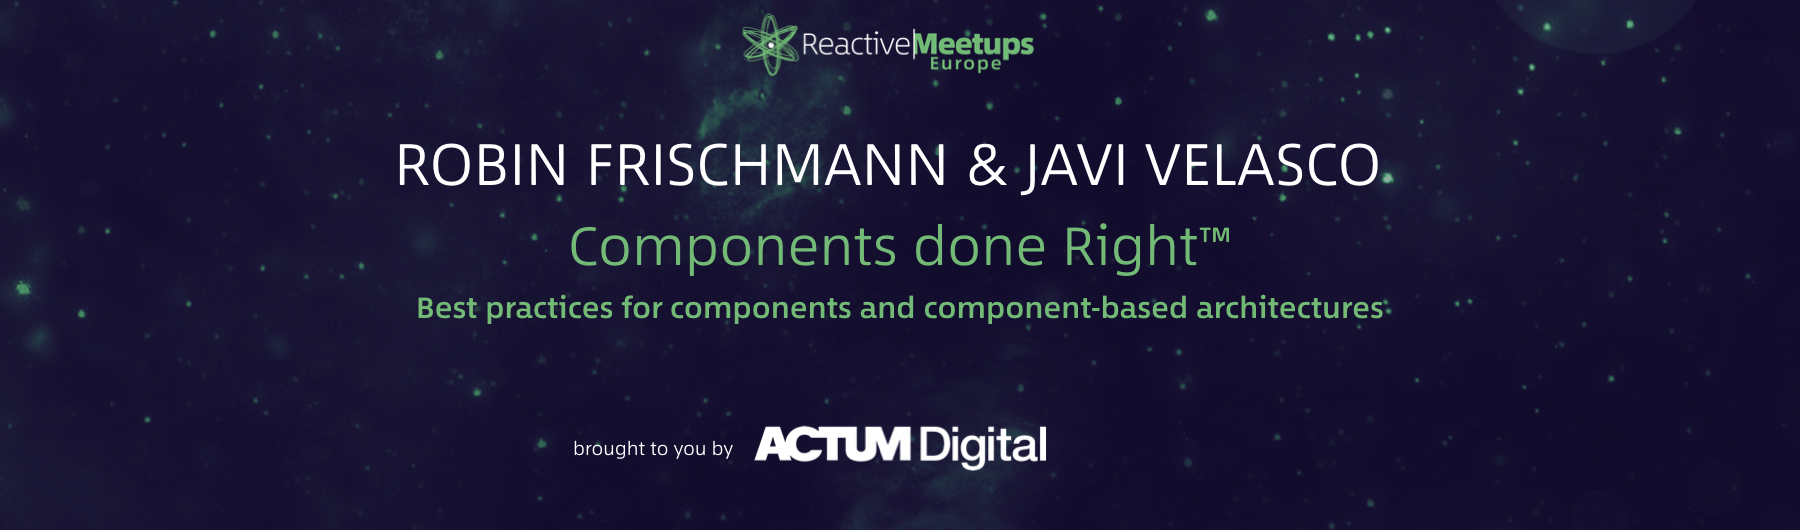 ReactiveMeetups Prague | Frischmann & Velasco